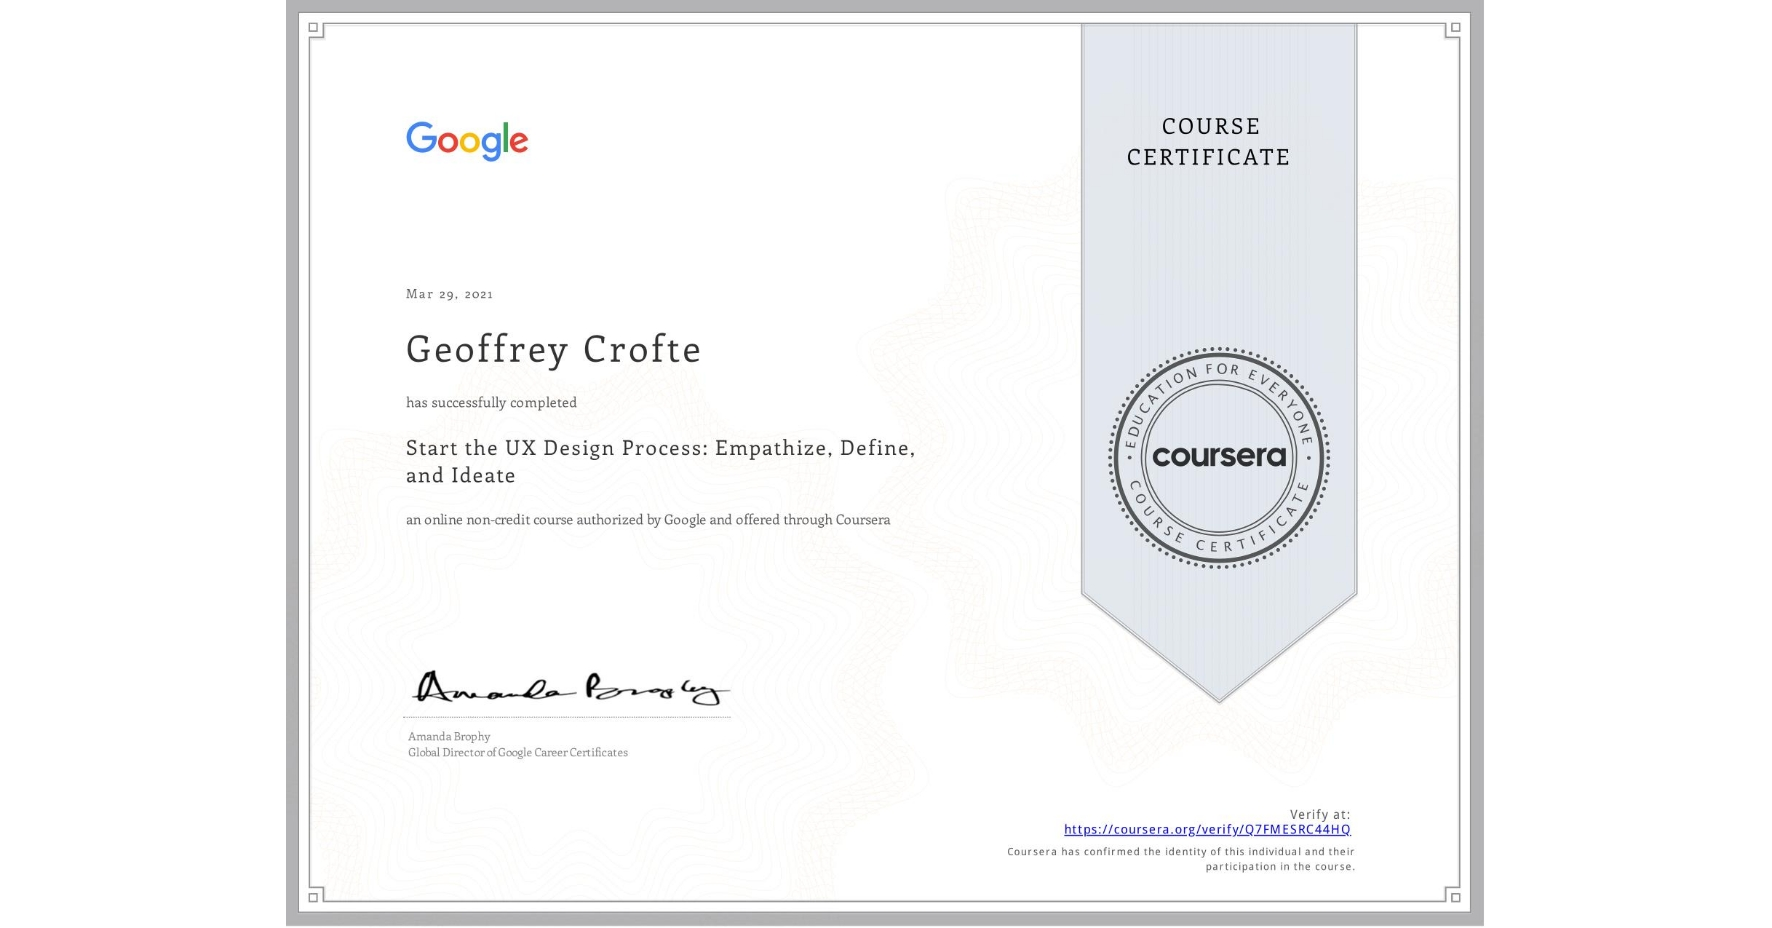 View certificate for Geoffrey Crofte, Start the UX Design Process: Empathize, Define, and Ideate, an online non-credit course authorized by Google and offered through Coursera